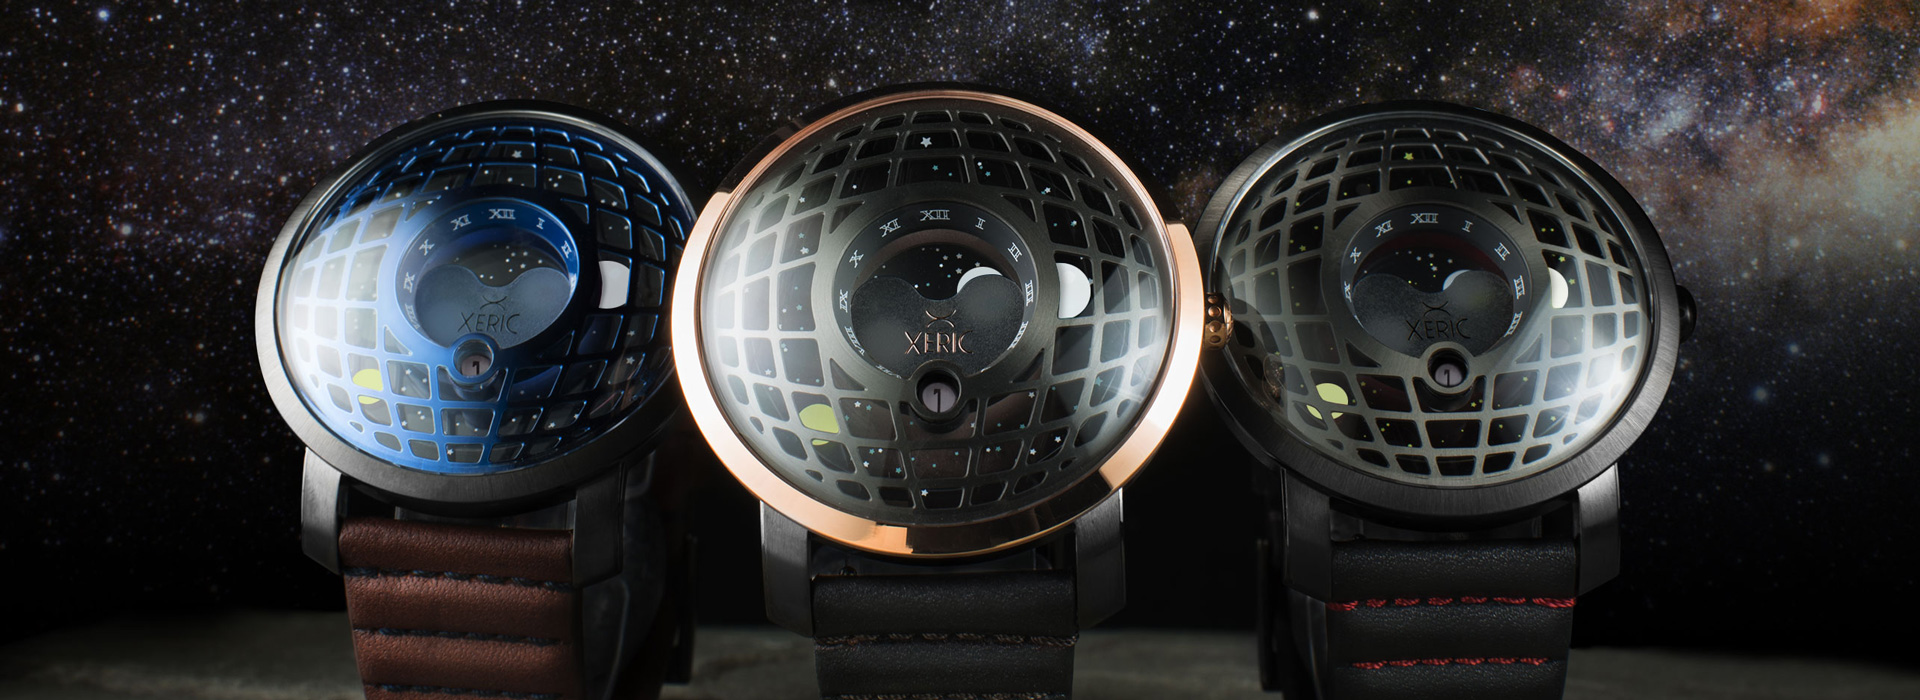 xeric trappist-1 moonphase collection